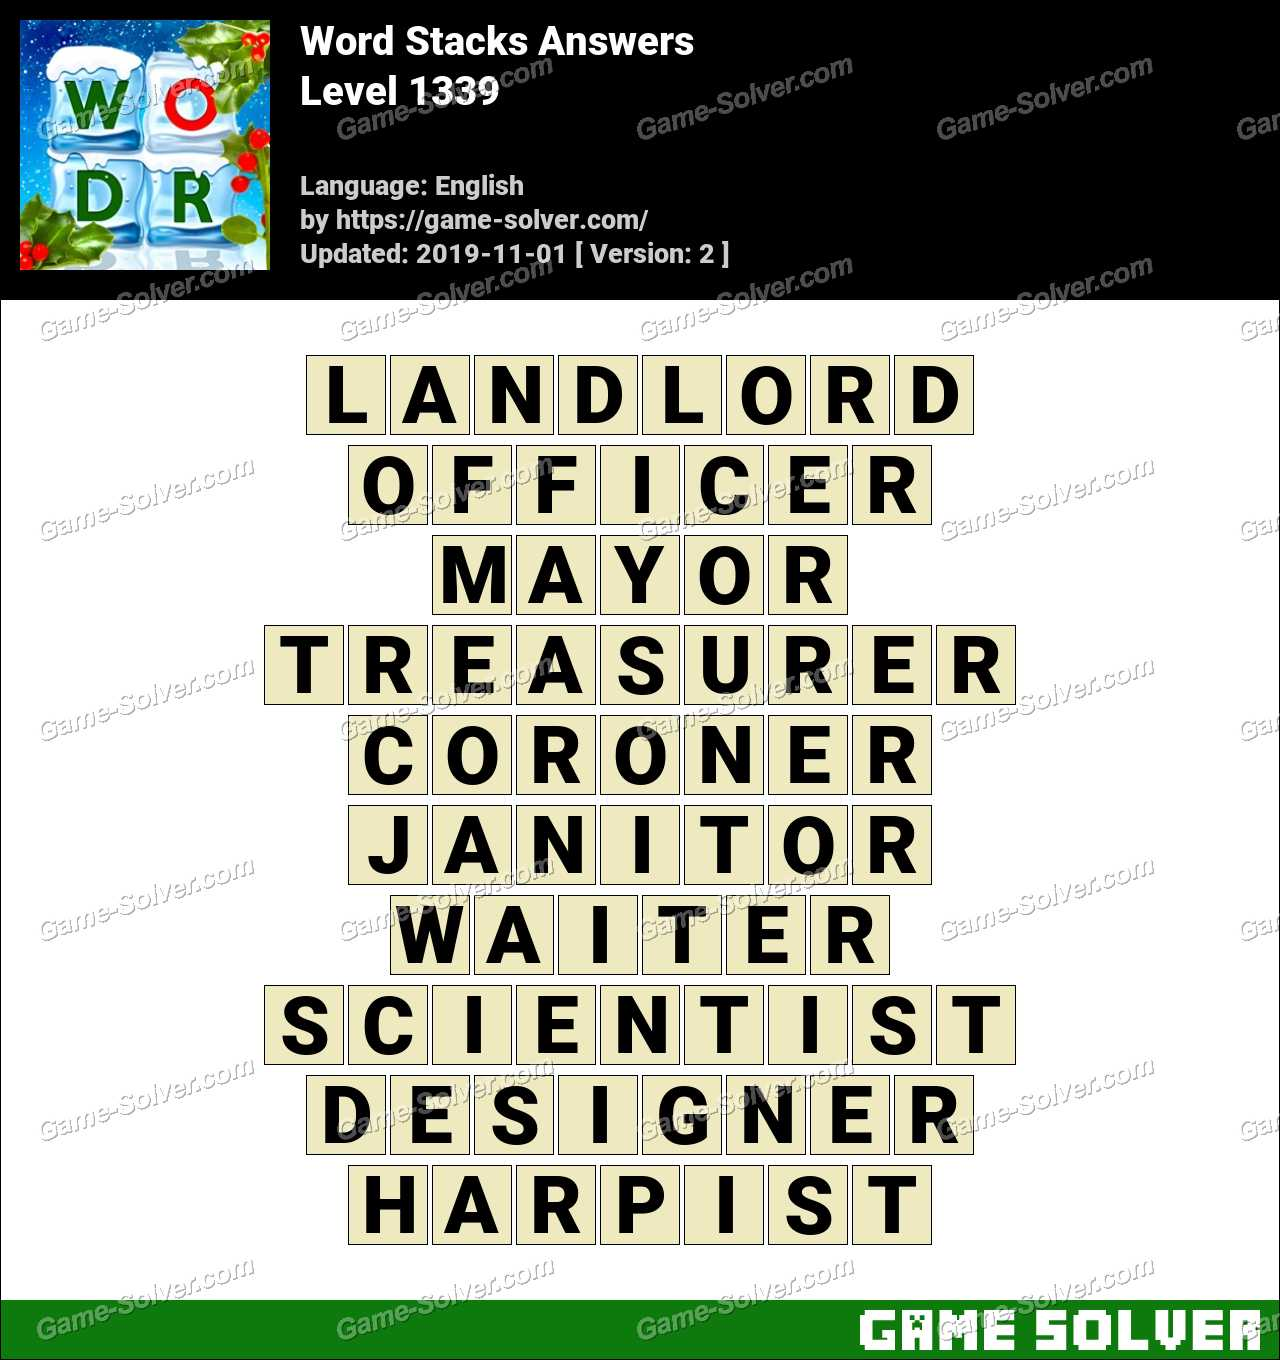 Word Stacks Level 1339 Answers